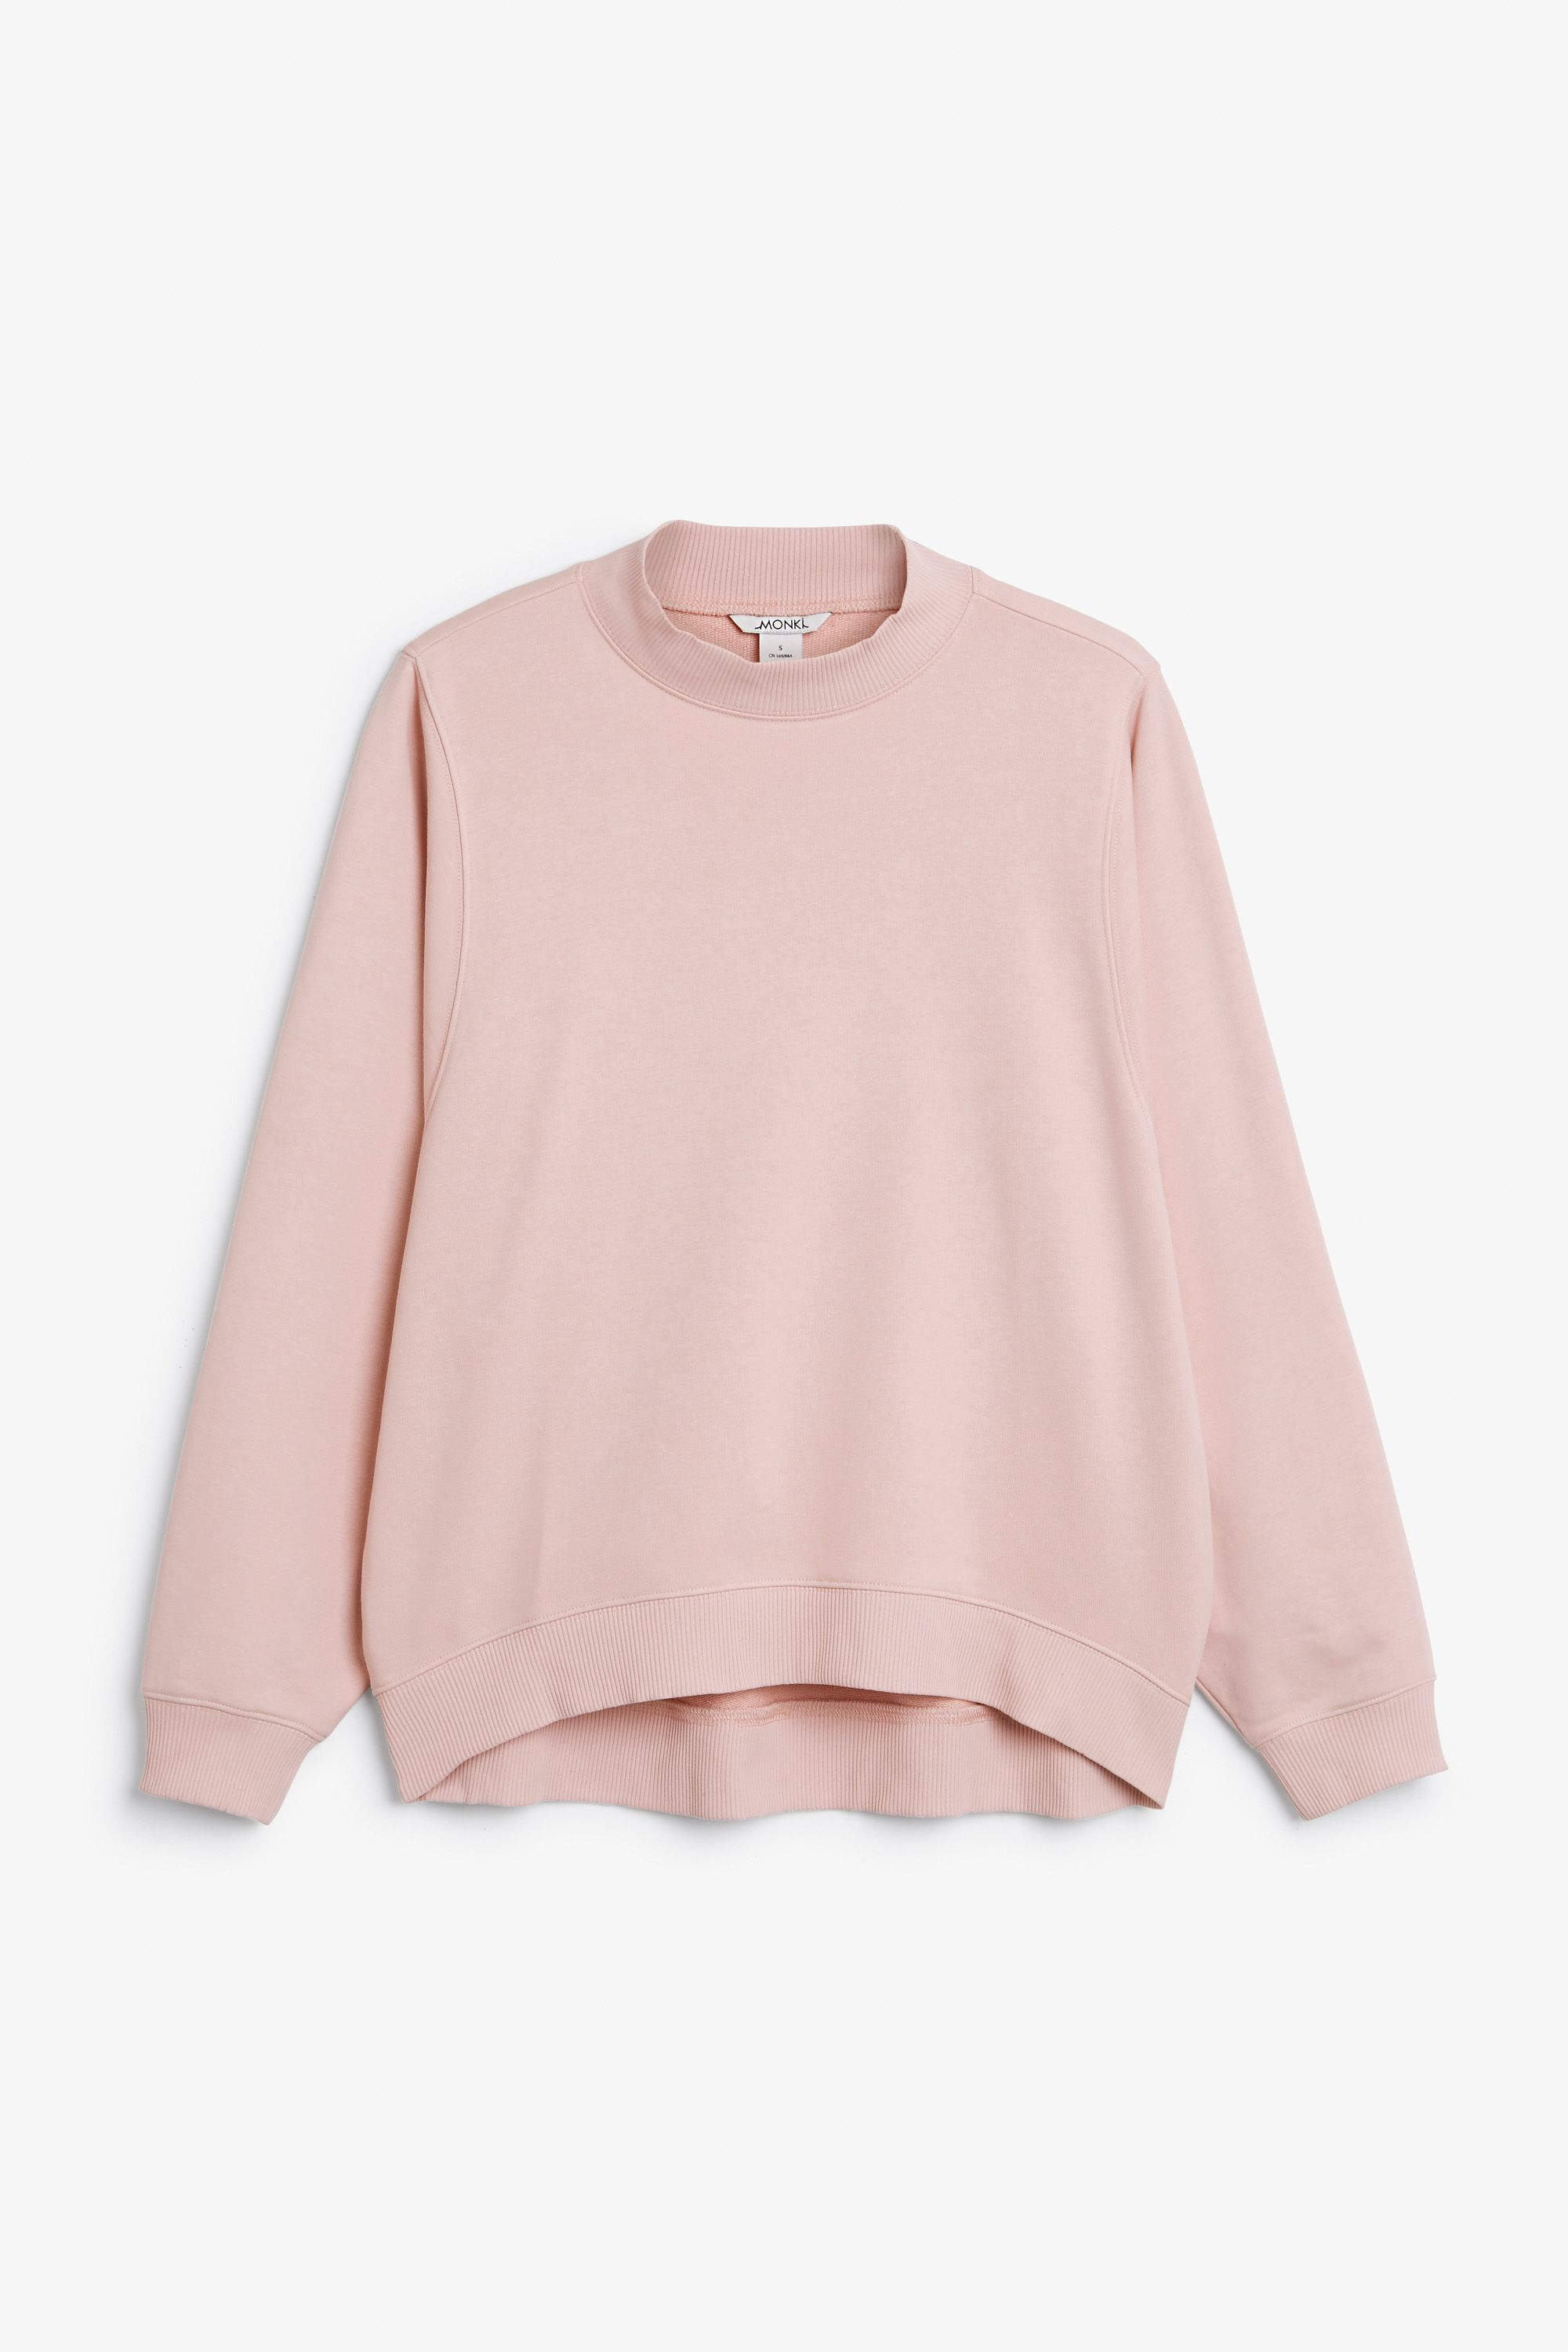 Monki Image 1 of Loose-fit sweater in Pink Yellowish Light | In ...